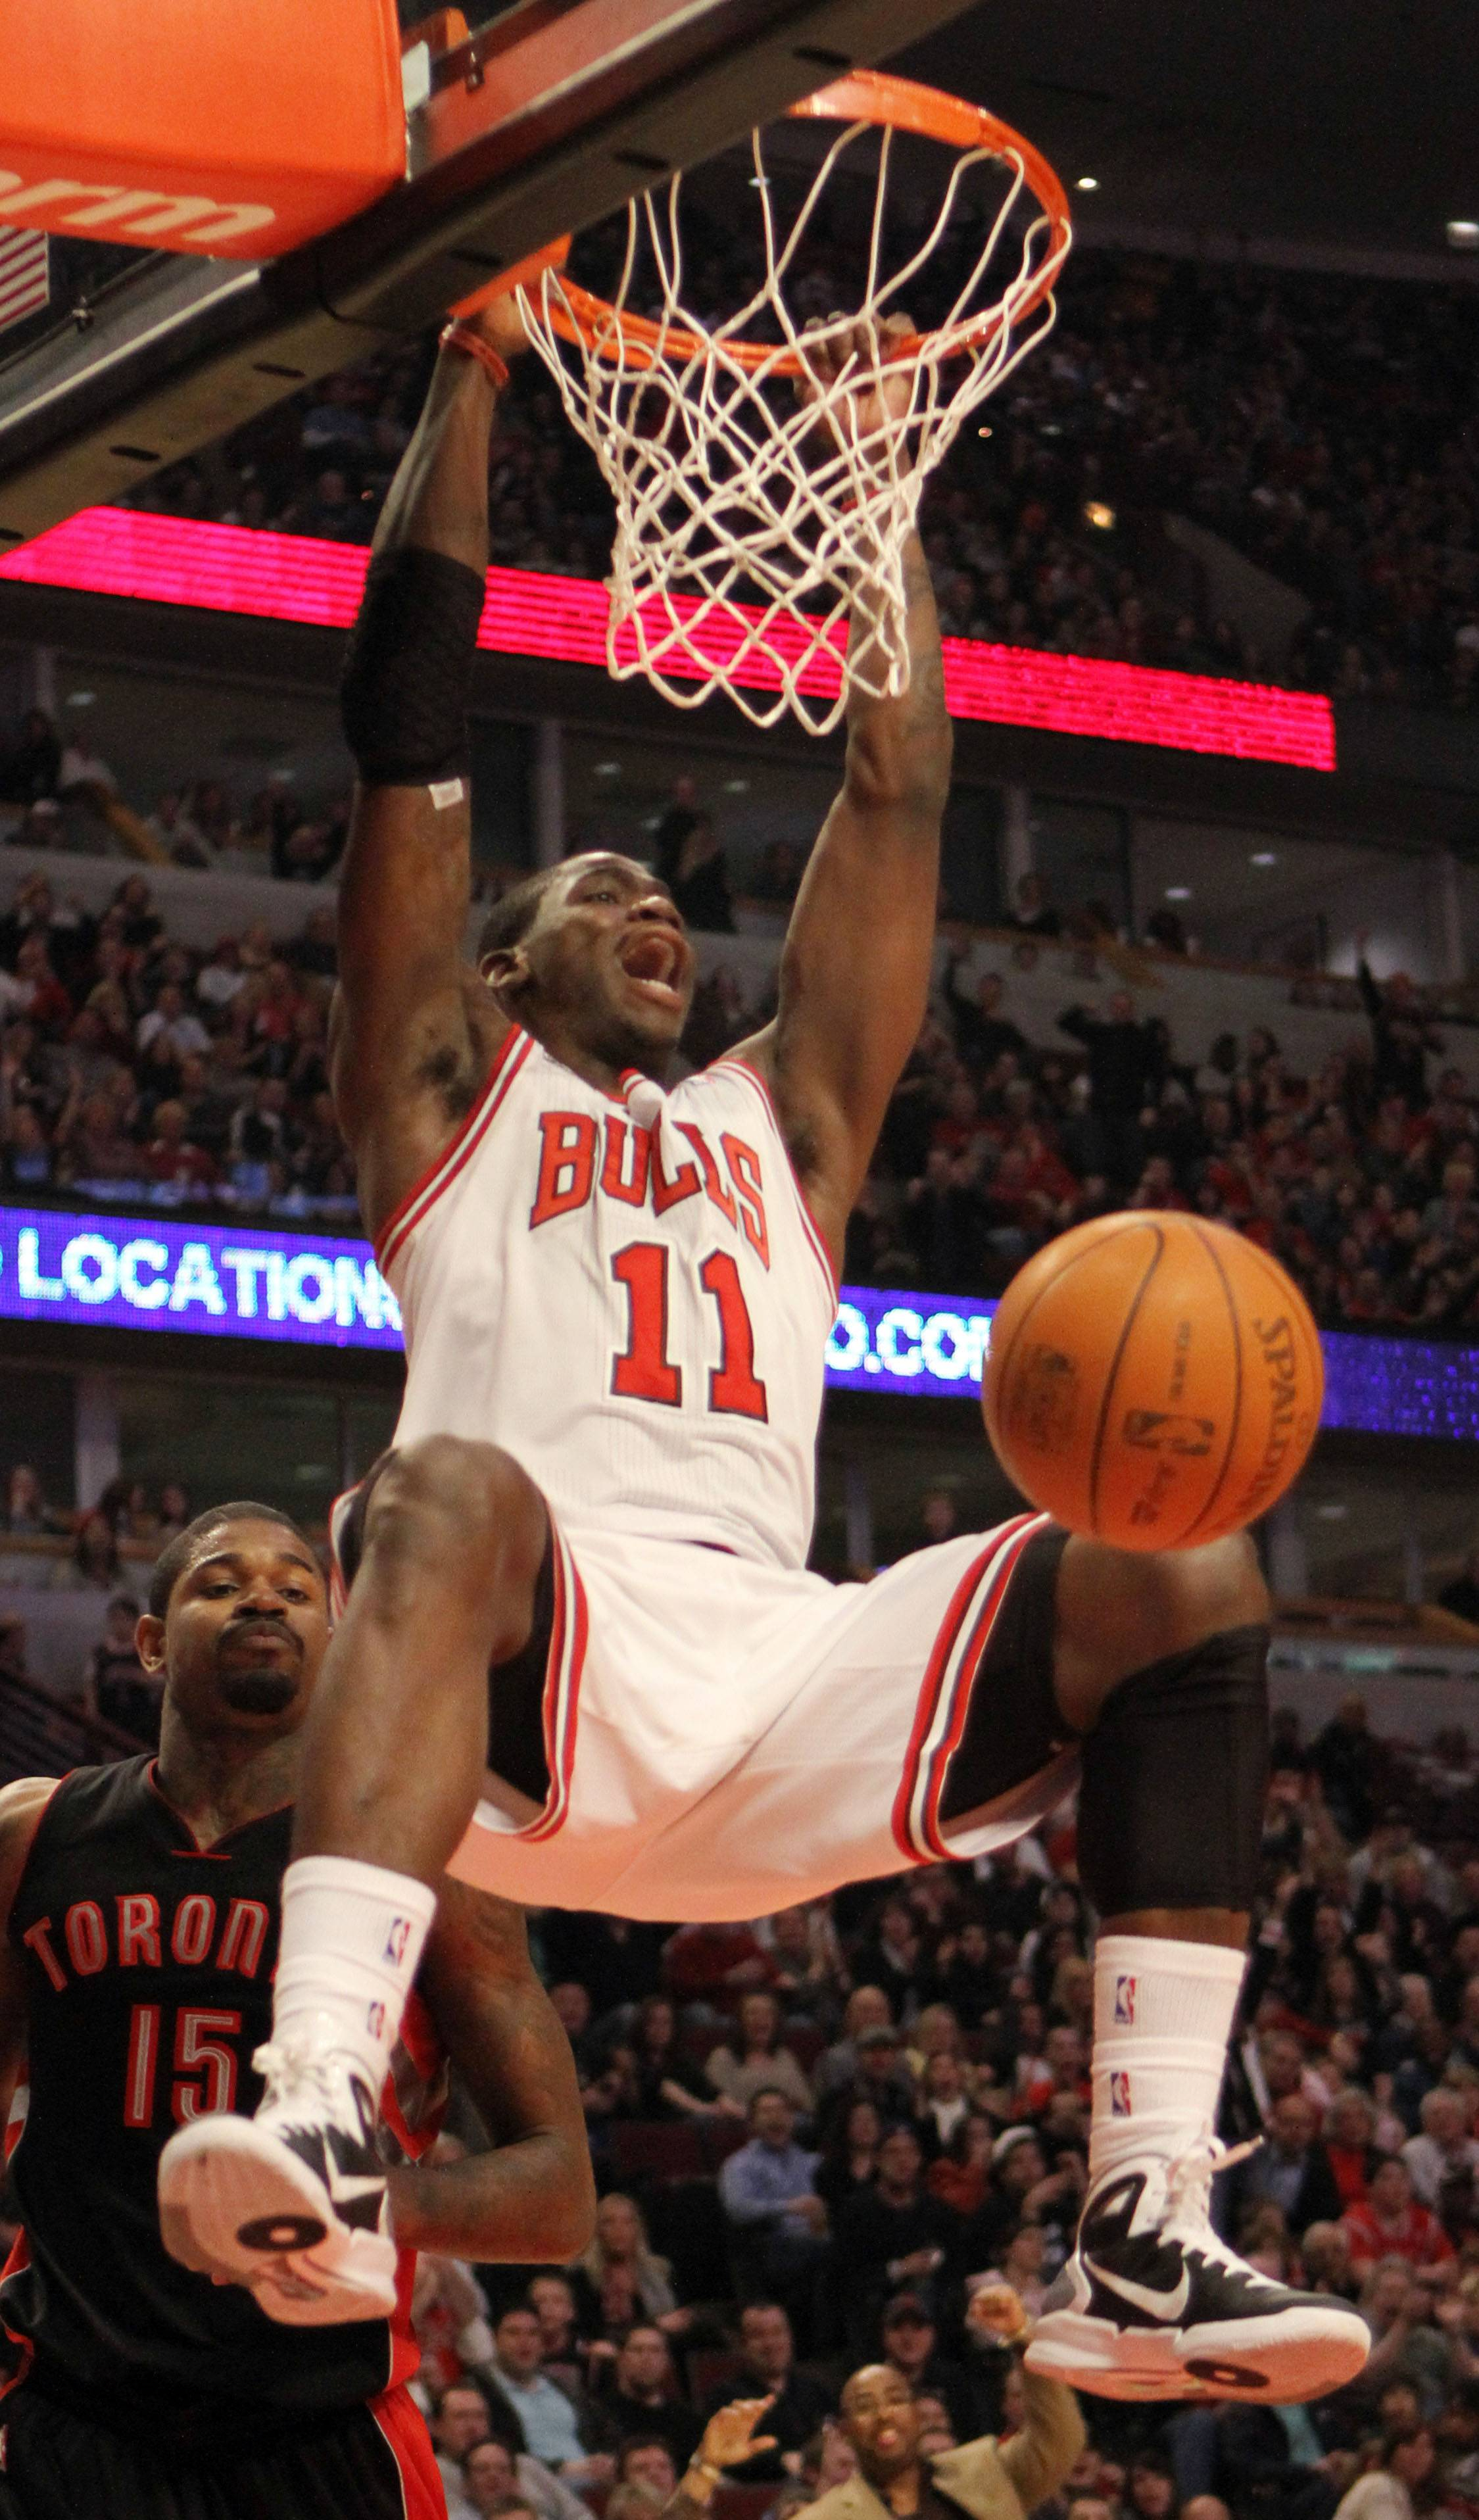 Ronnie Brewer rejoined the Bulls and will wear uniform No. 11.